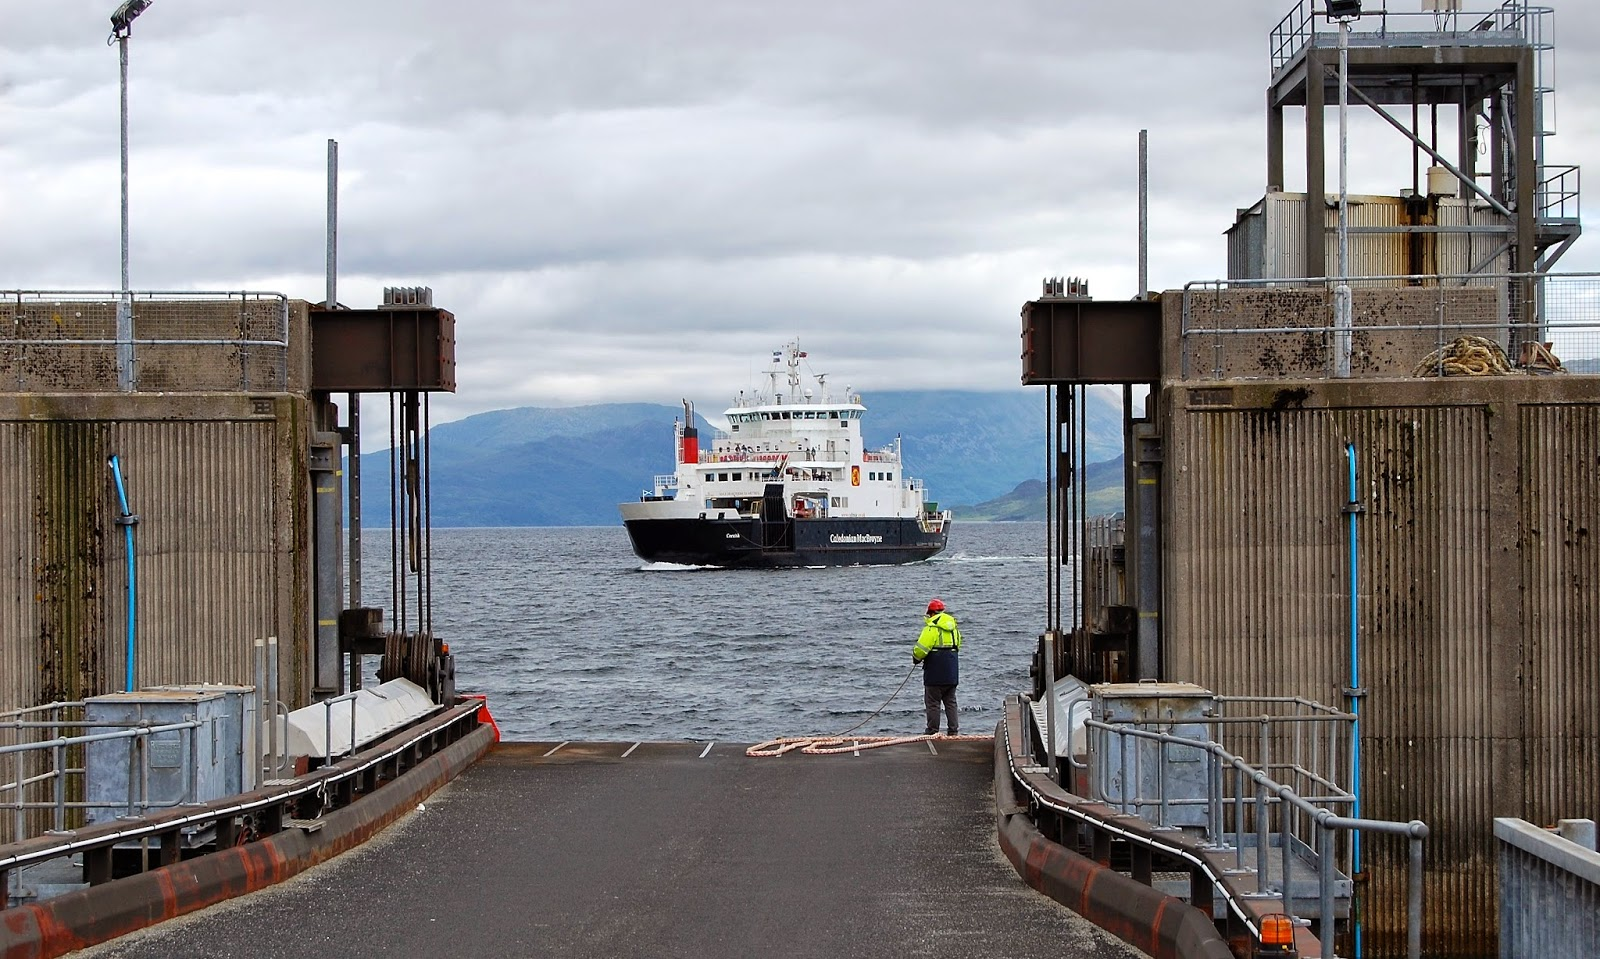 Caledonian MacBrayne ferry boat arrives in Armadale, Isle of Skye